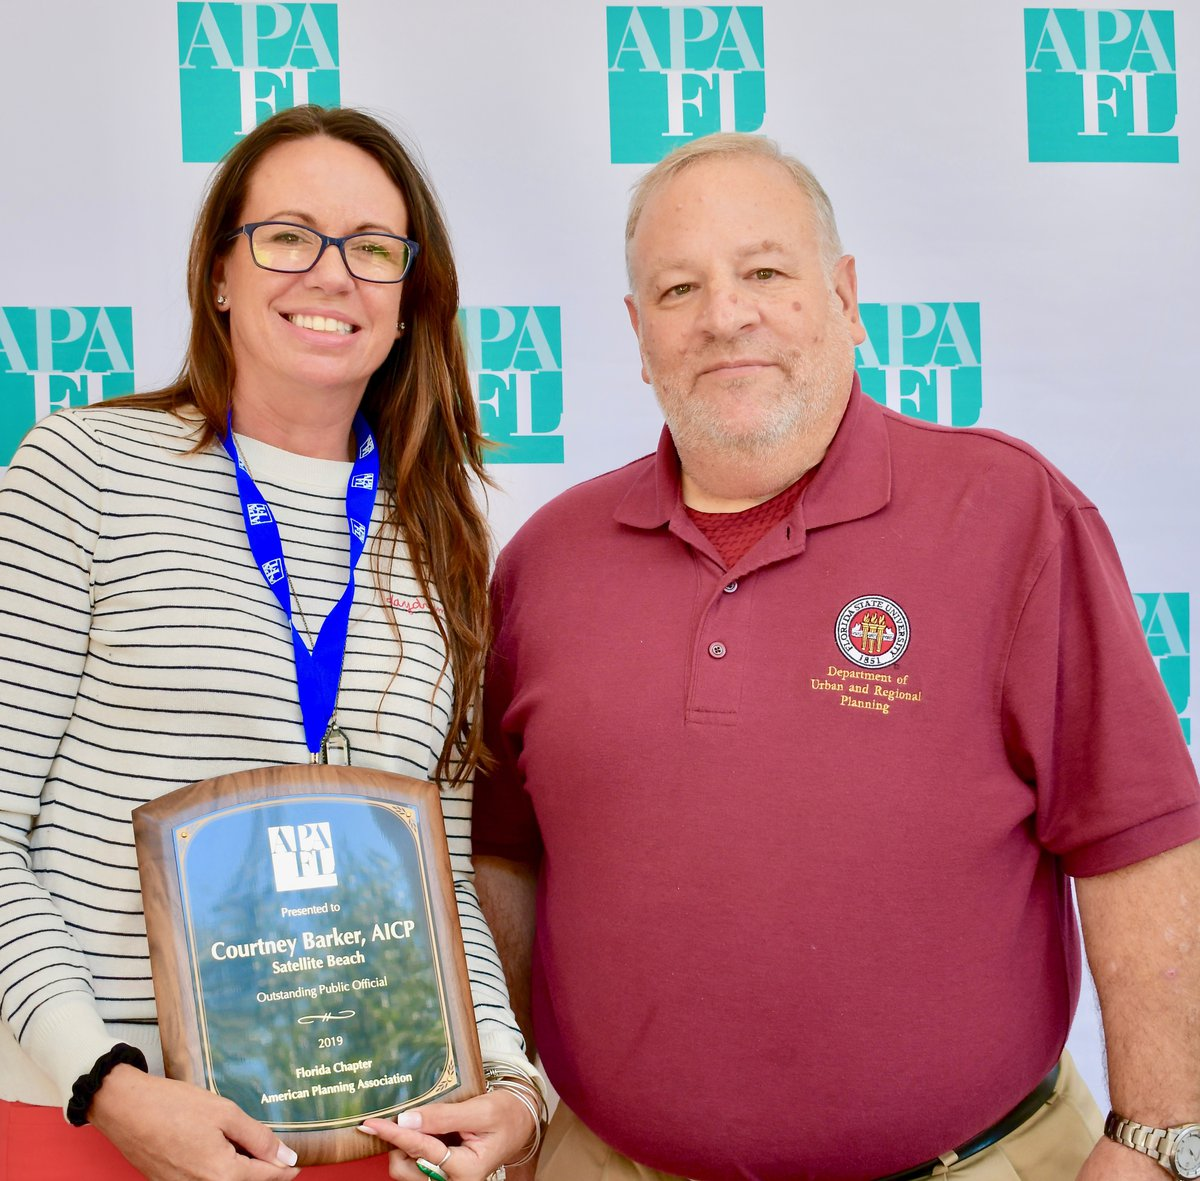 Courtney Barker AICP receives the 2019 APA Florida Local Public Official Award